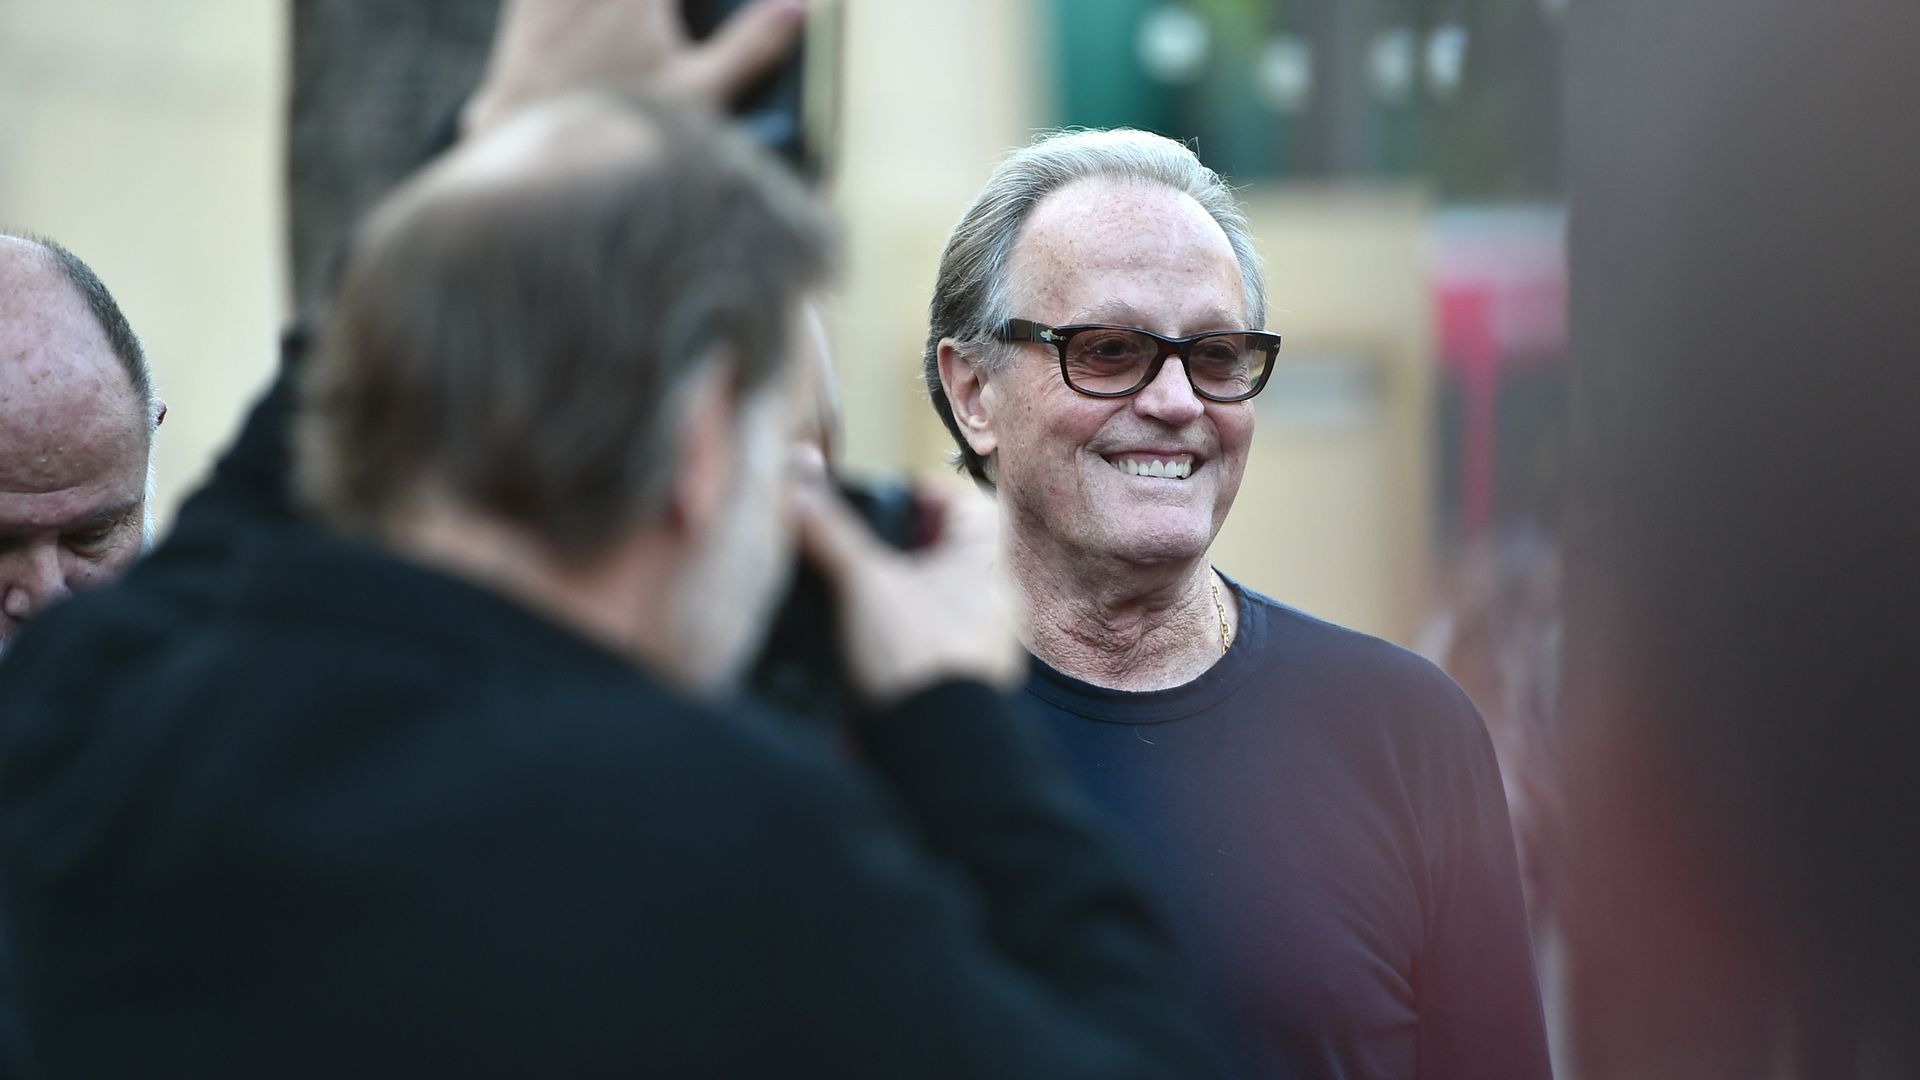 59b380777acf Conservative Twitter personalities compare Peter Fonda's tweet gaffe ...